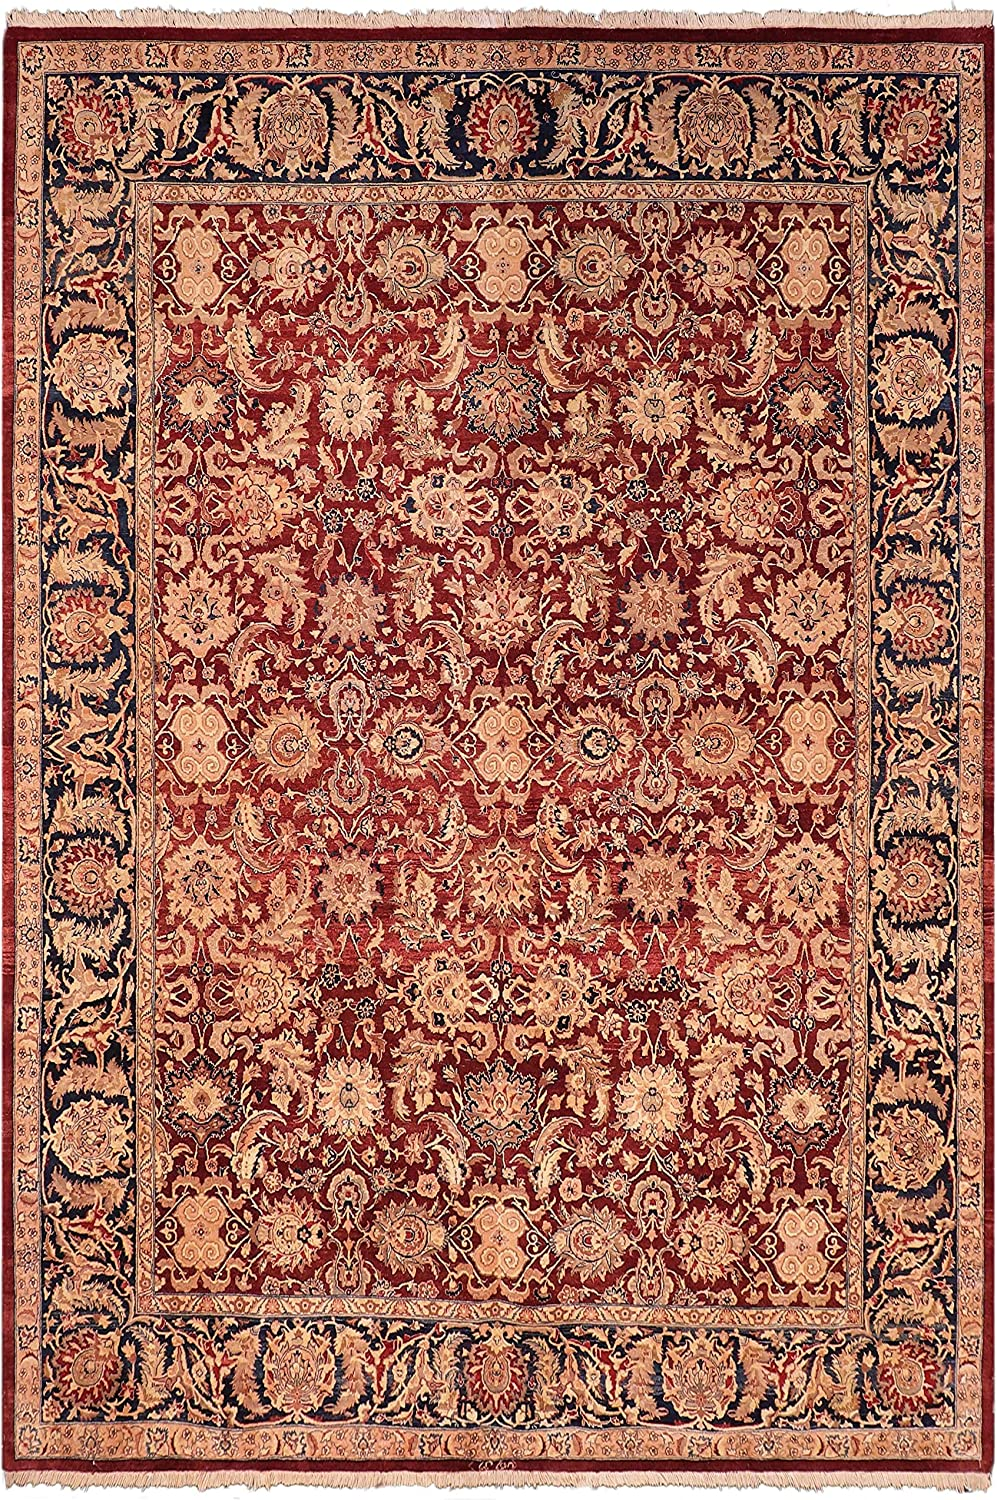 Antique Vegetable Dyed Agra Limited time sale Sindy Red Blue Max 73% OFF 8'1'' Rug x - 10 Wool